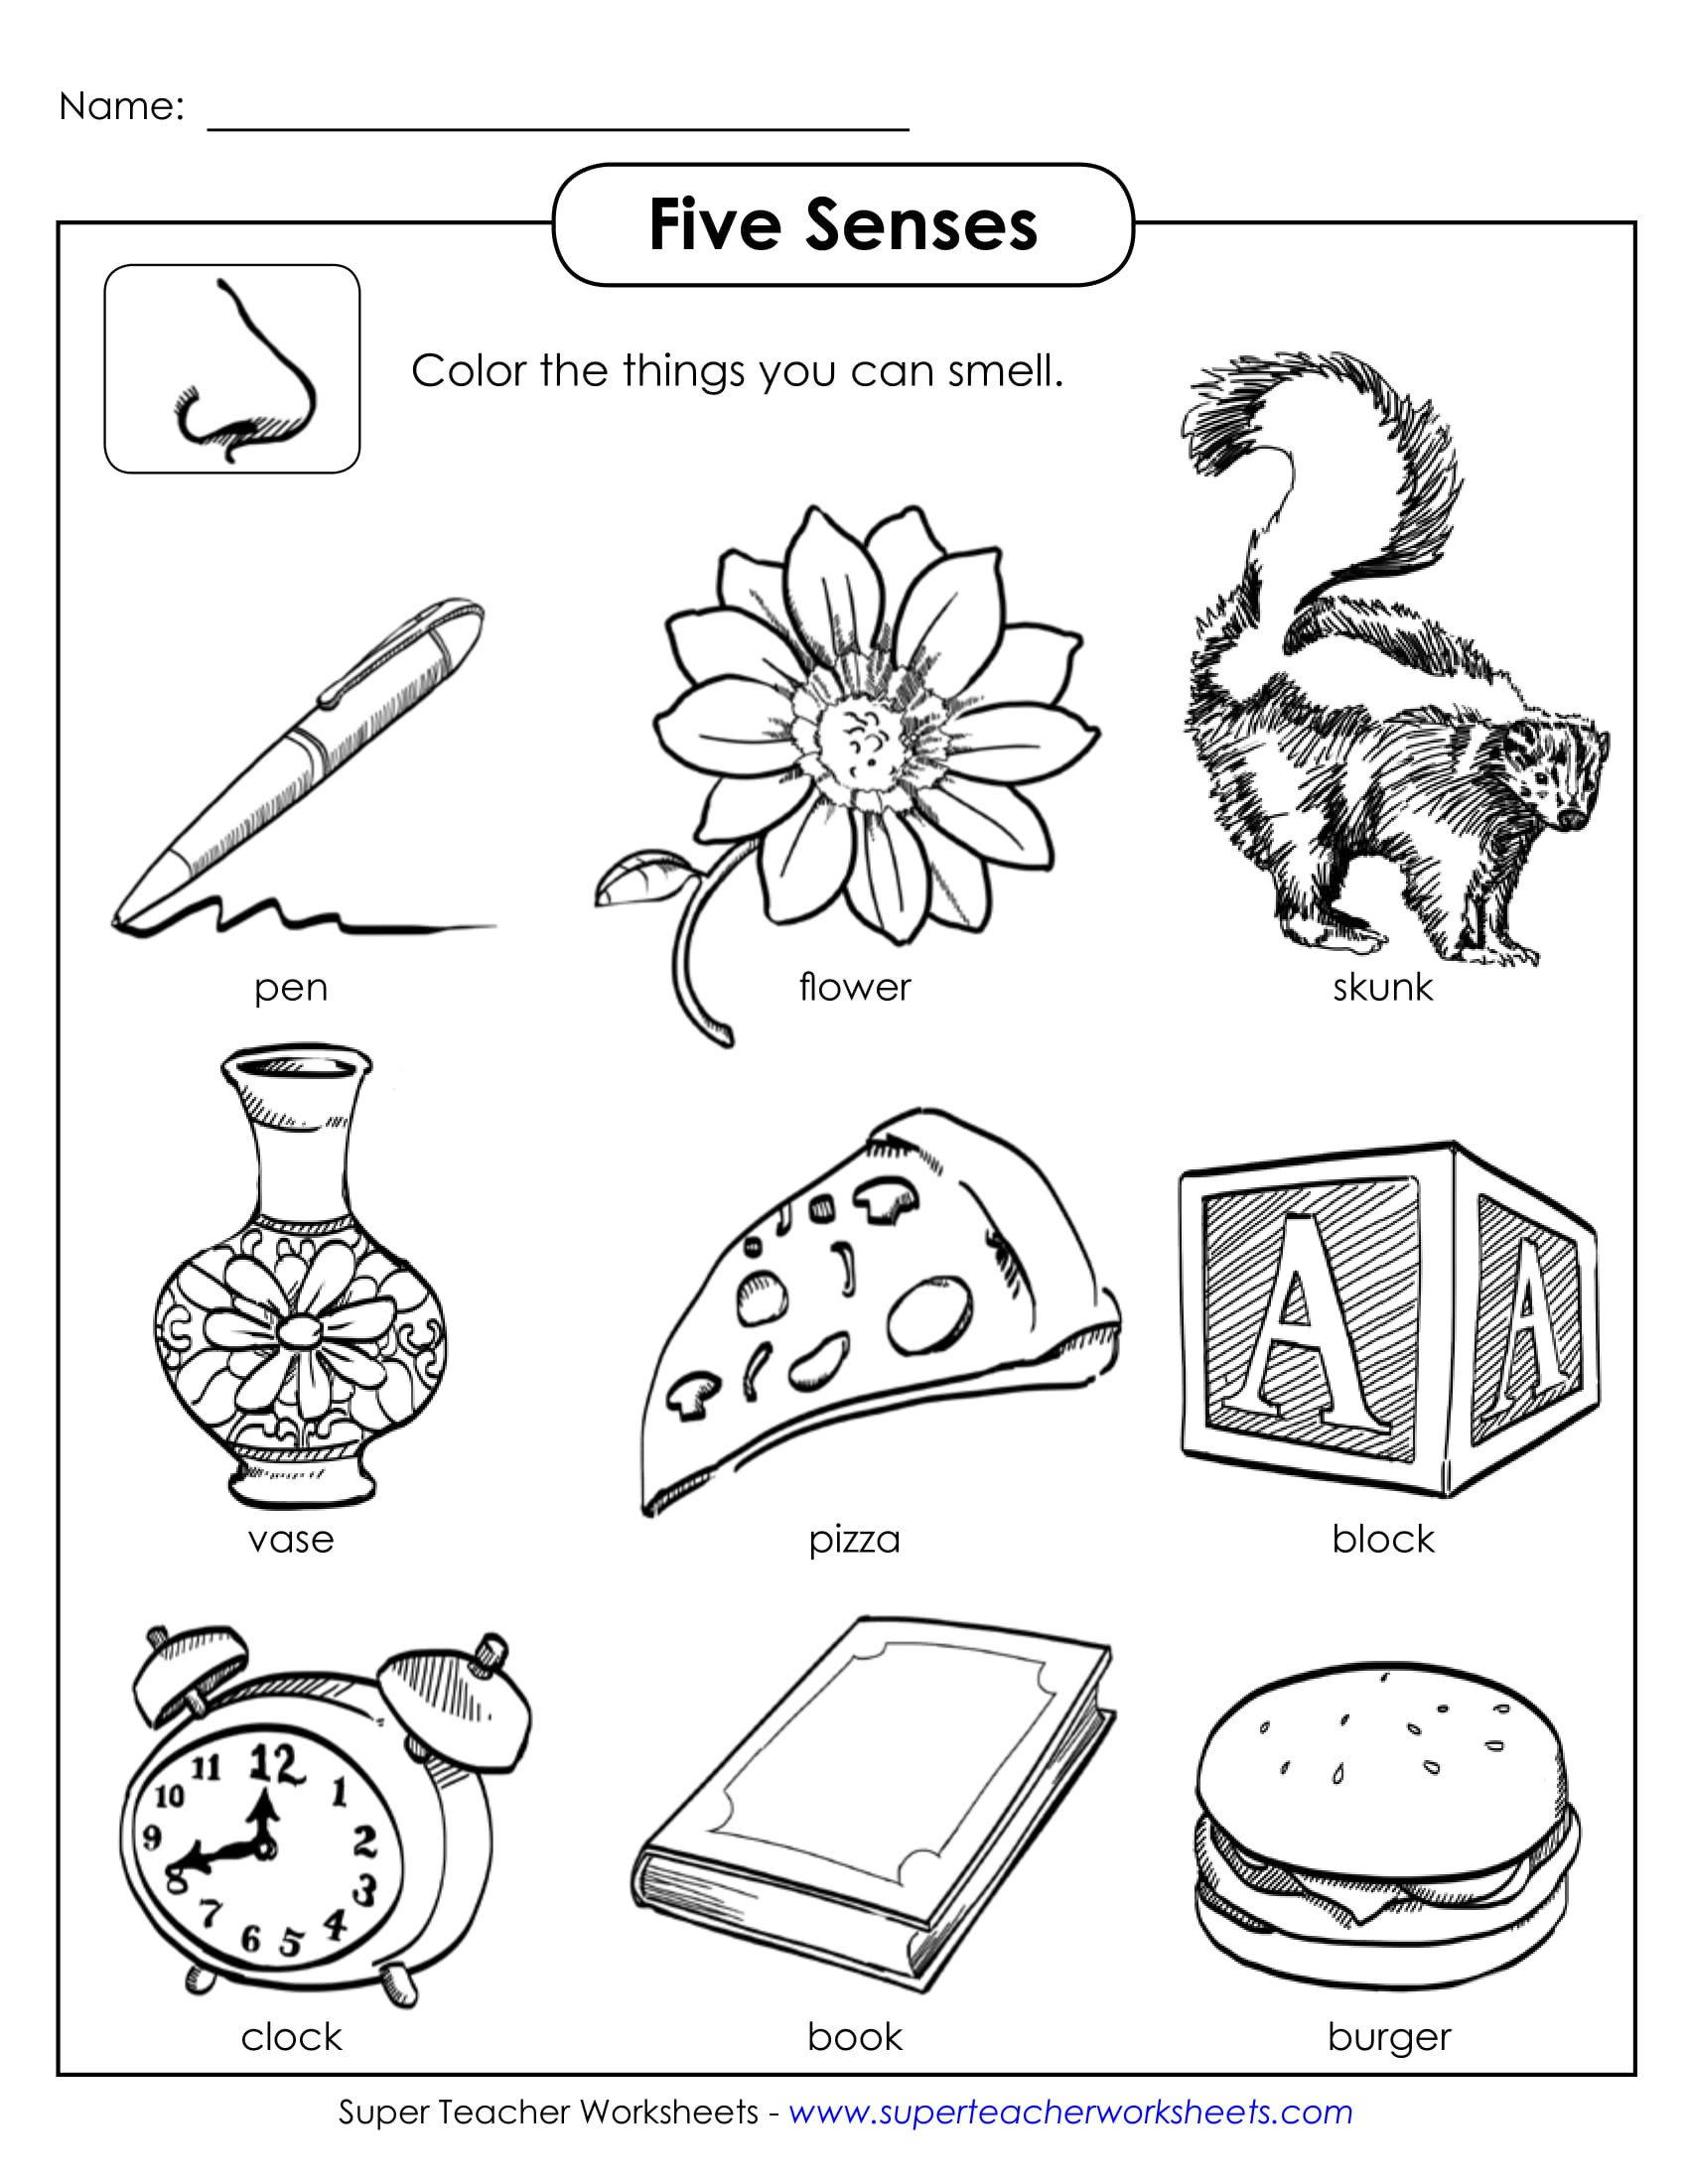 5 Senses Worksheet for Kindergarten Hiddenfashionhistory Free and Roll Worksheets Senses for